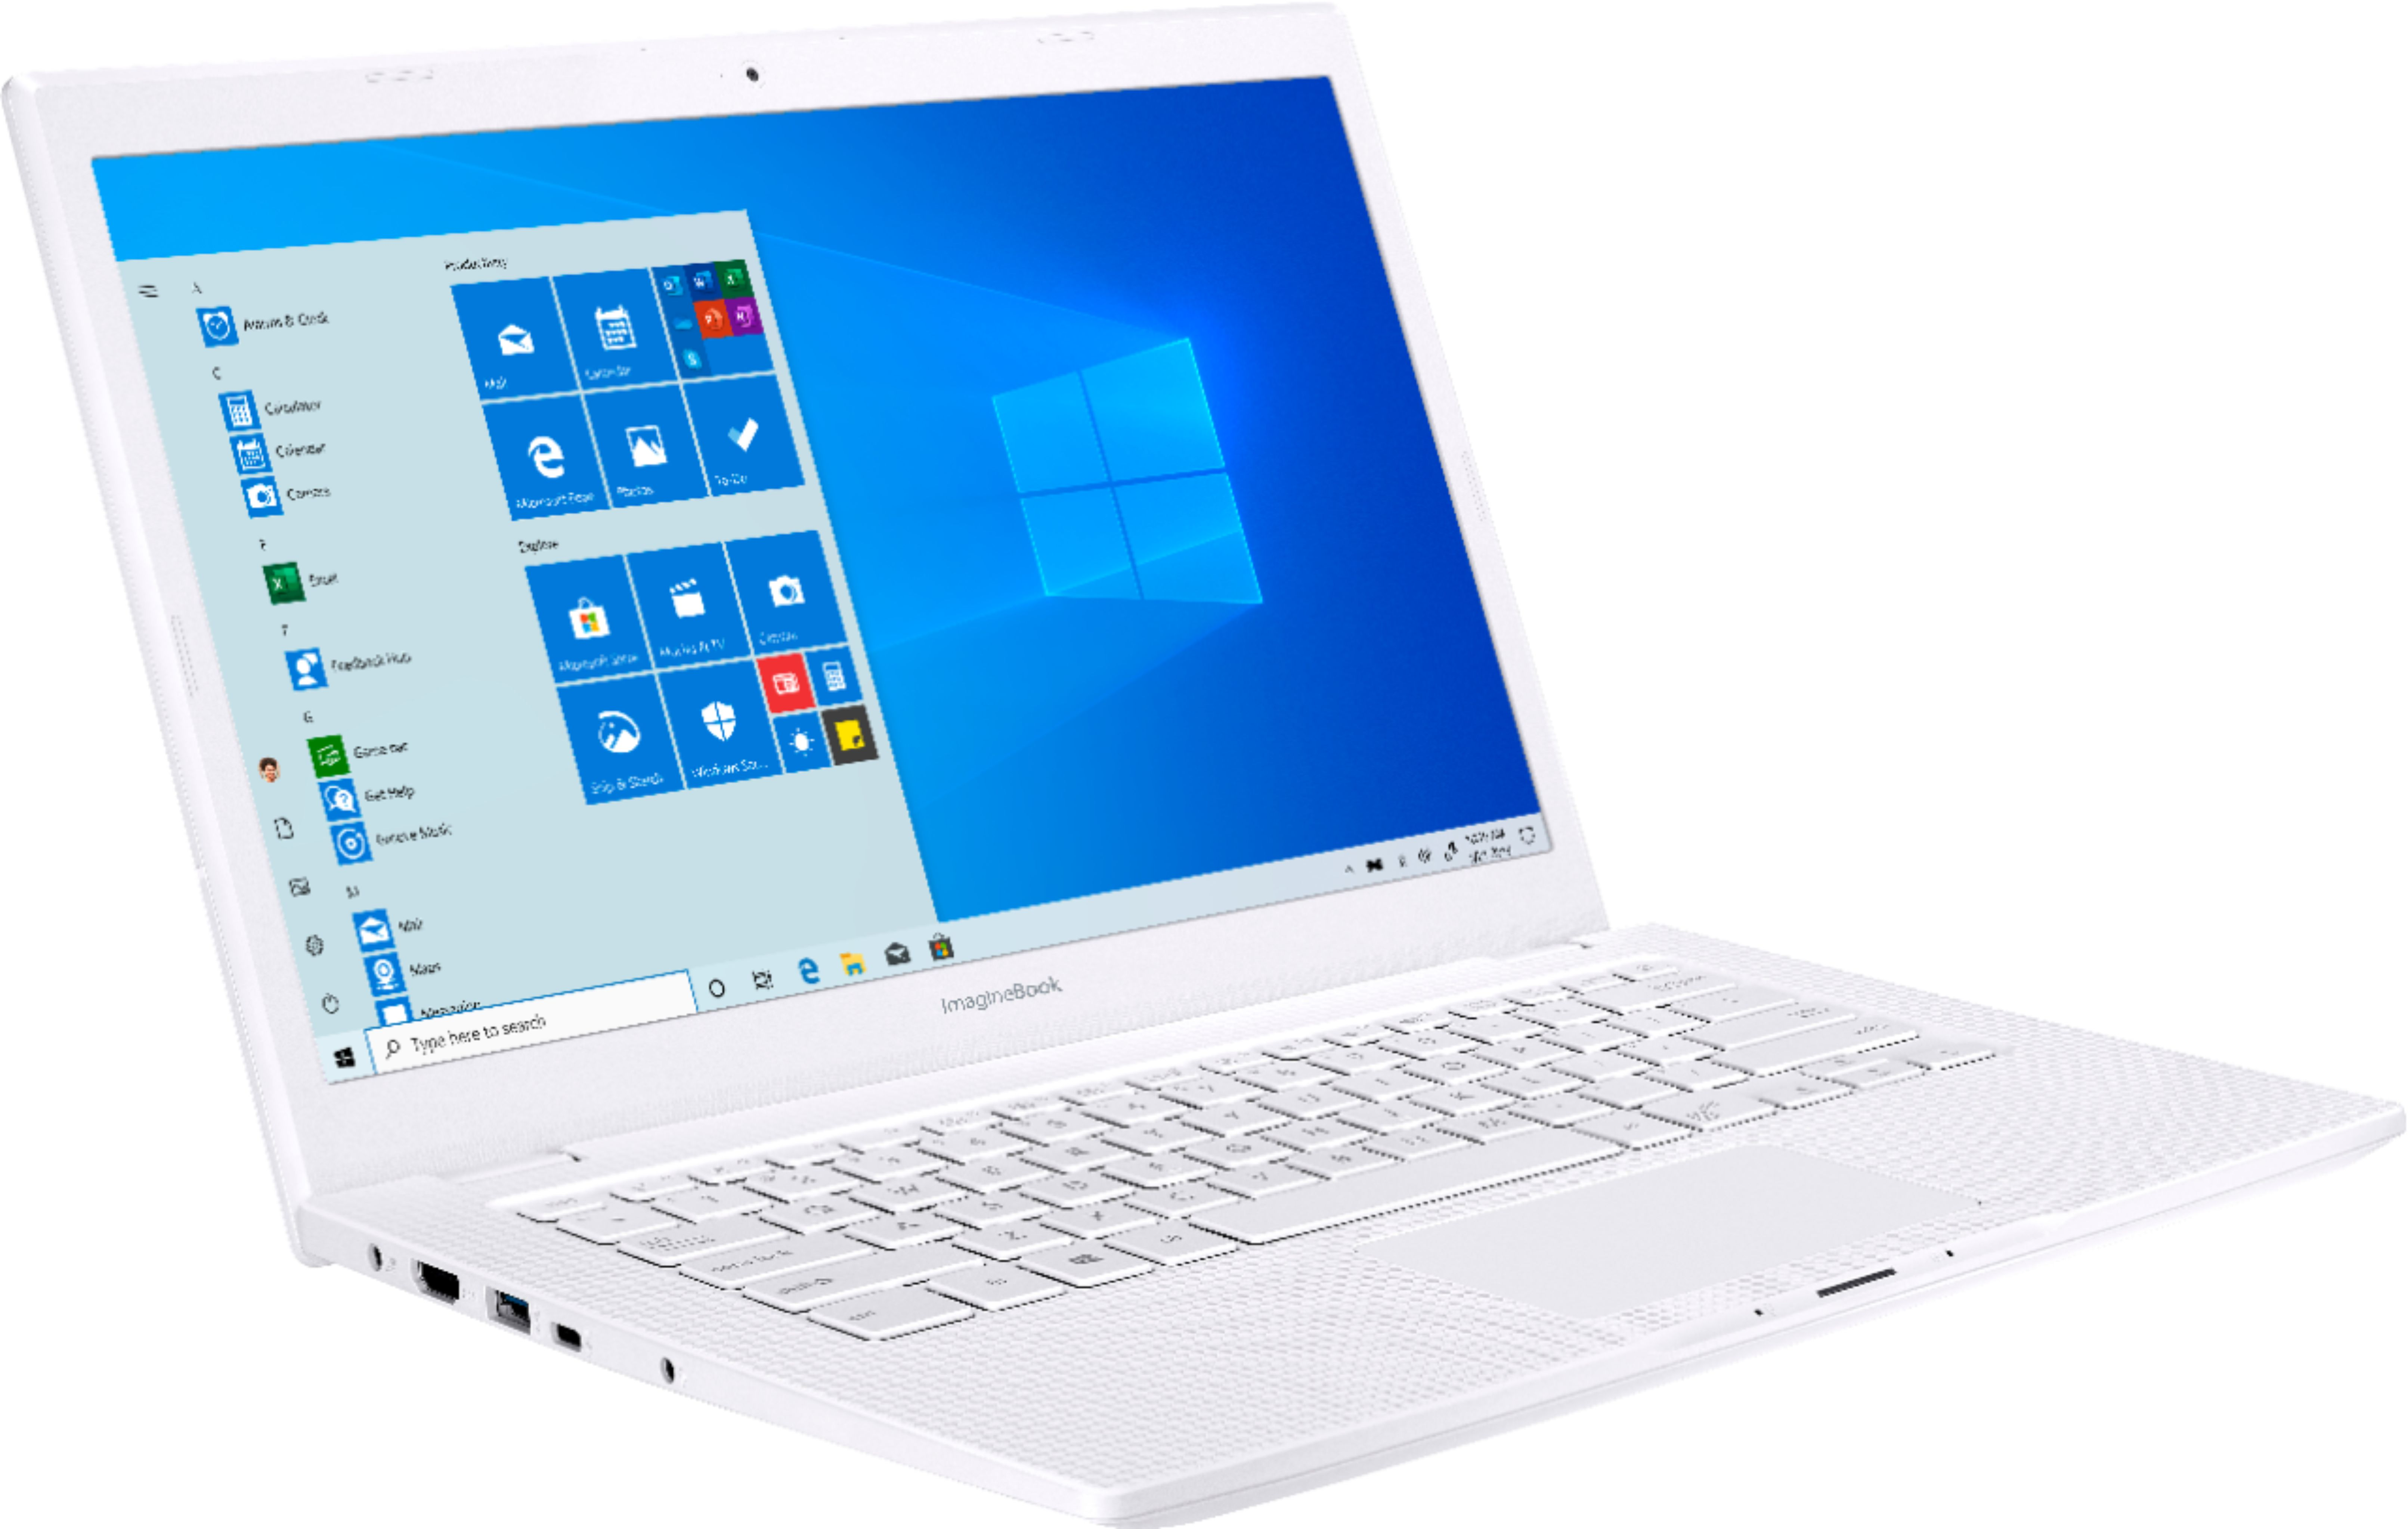 """Angle Zoom. ASUS - Geek Squad Certified Refurbished ImagineBook 14"""" Laptop - Intel Core m3 - 4GB Memory - 128GB Solid State Drive - Textured White."""